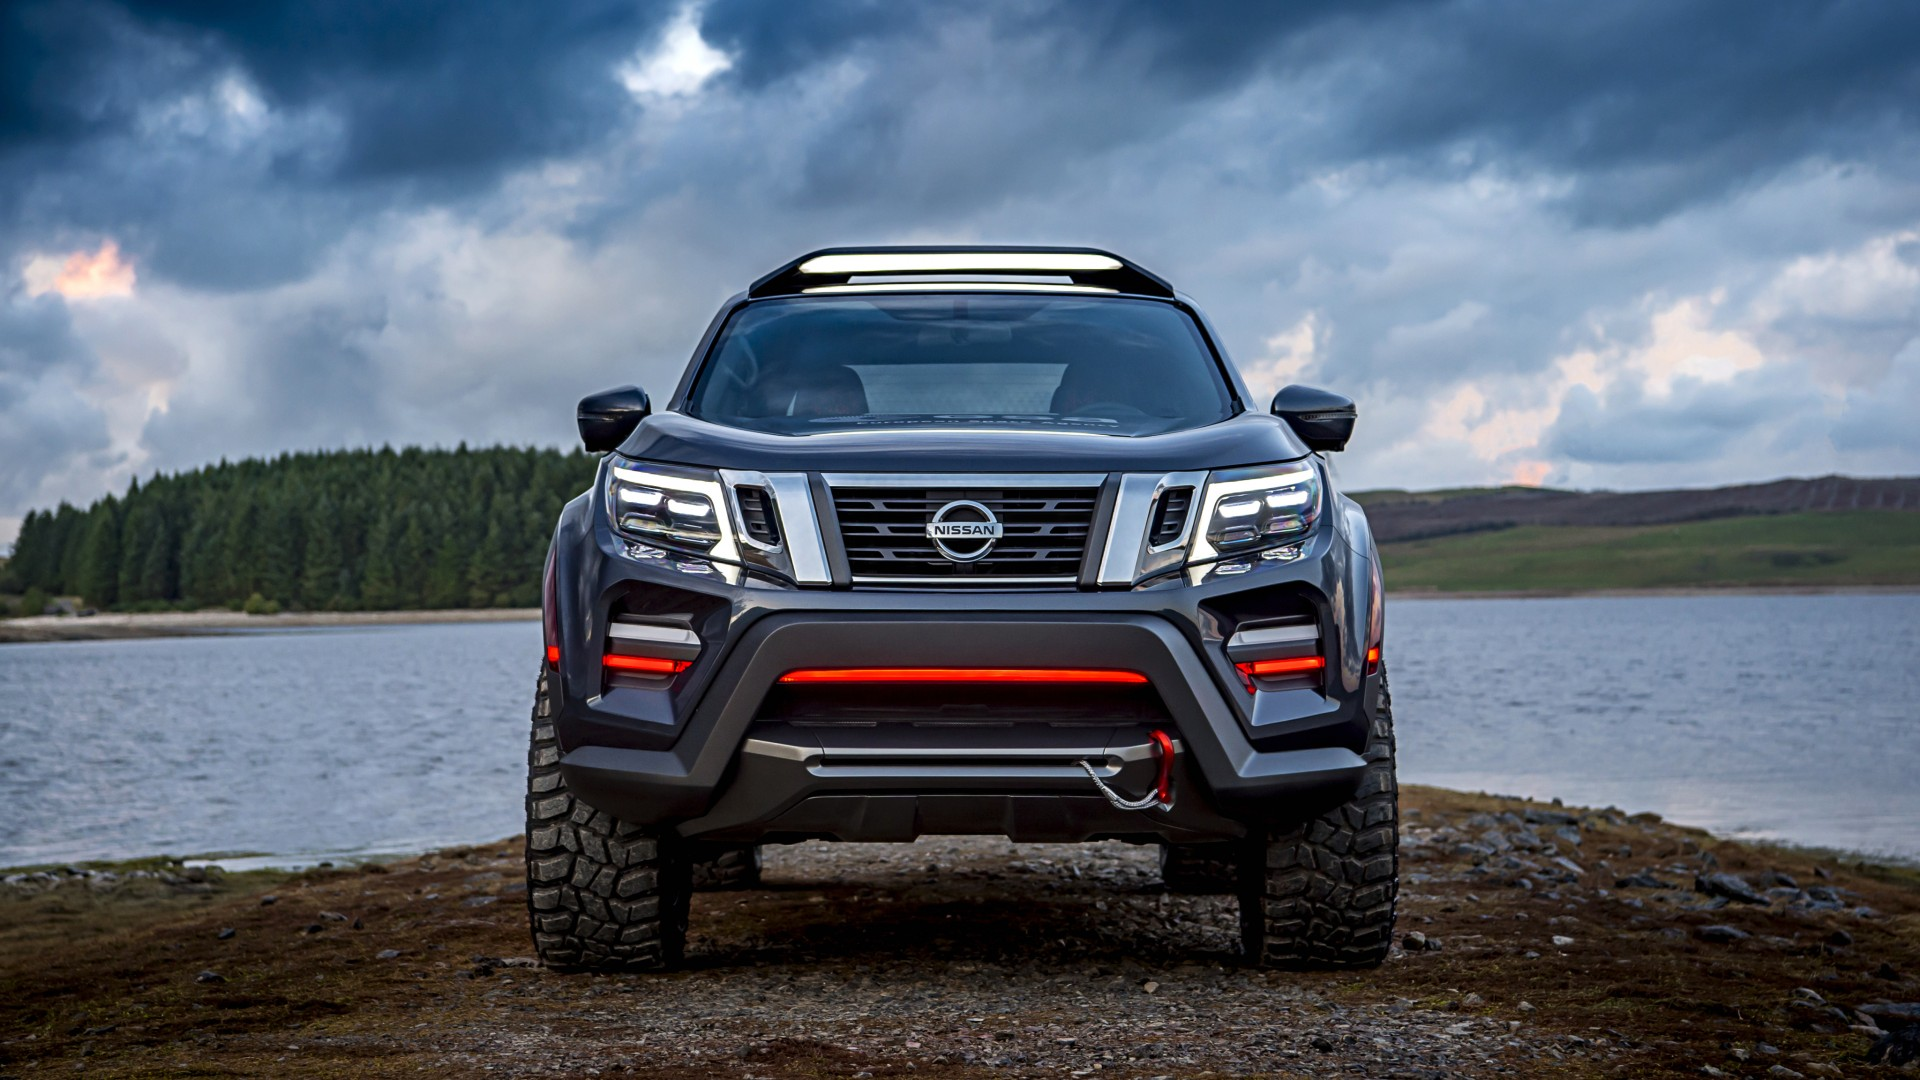 Nissan Navara Dark Sky Concept 2018 4K 2 Wallpaper | HD ...